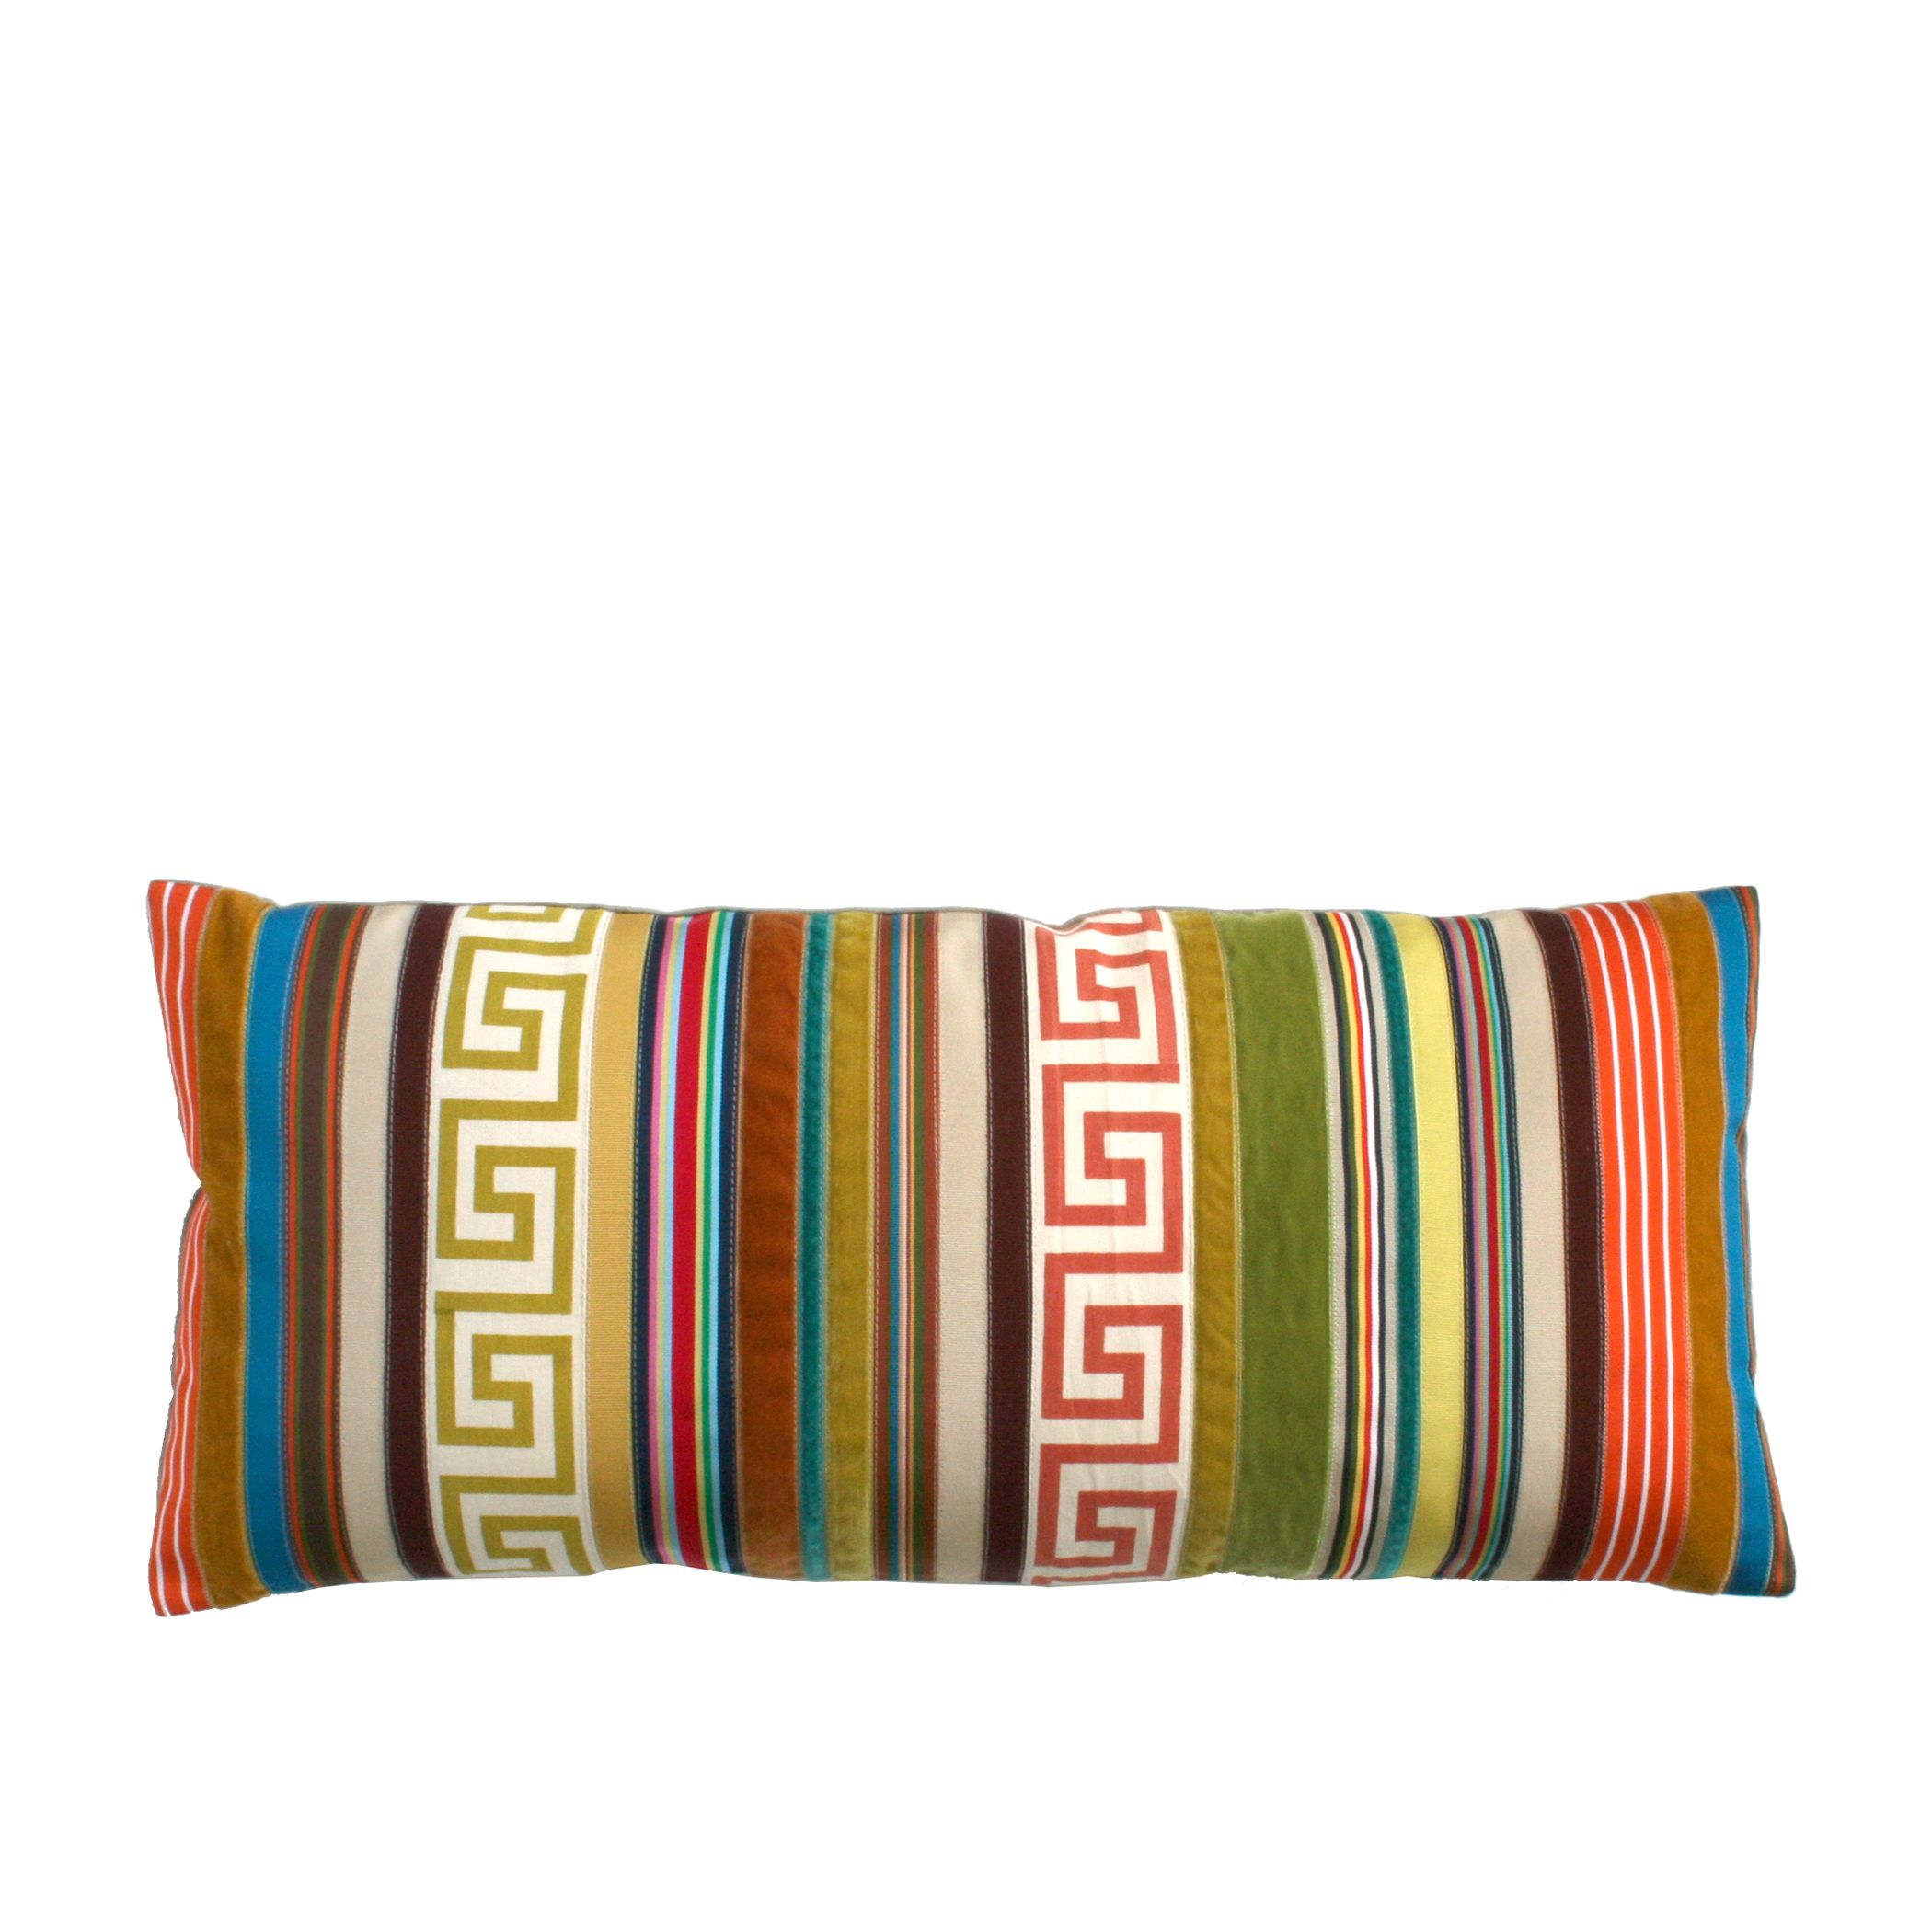 Our Trident Stripes Pillows Are Featured In Alexander Donovan S Bedroom Stripe Pillow Pillows Throw Pillows